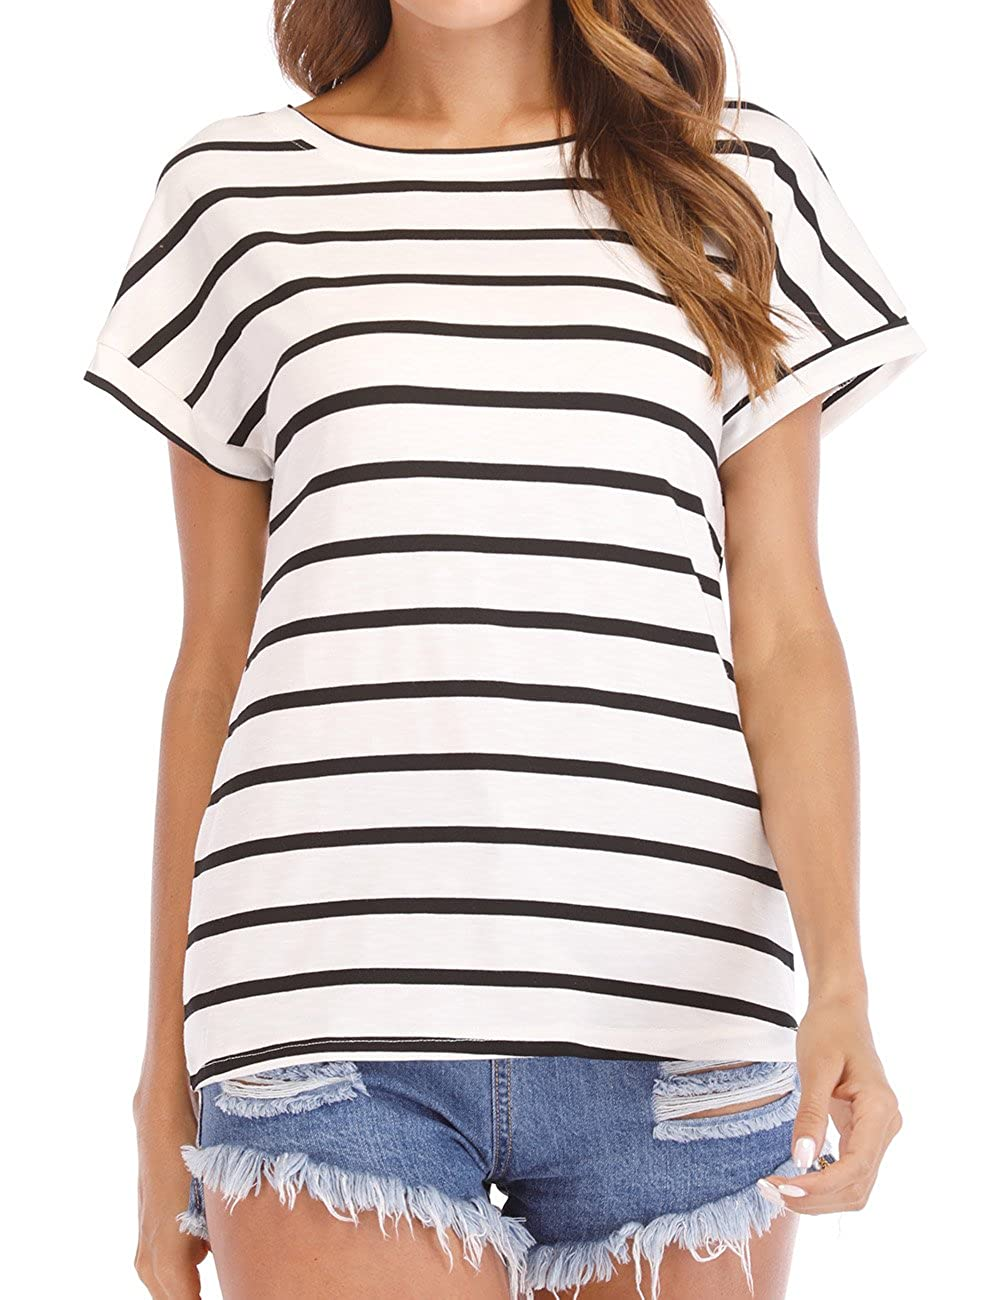 f173204295825 Haola Women s Striped Tops Summer Casual Round Neck Short Sleeve Blouse T- Shirt (S-3XL) at Amazon Women s Clothing store